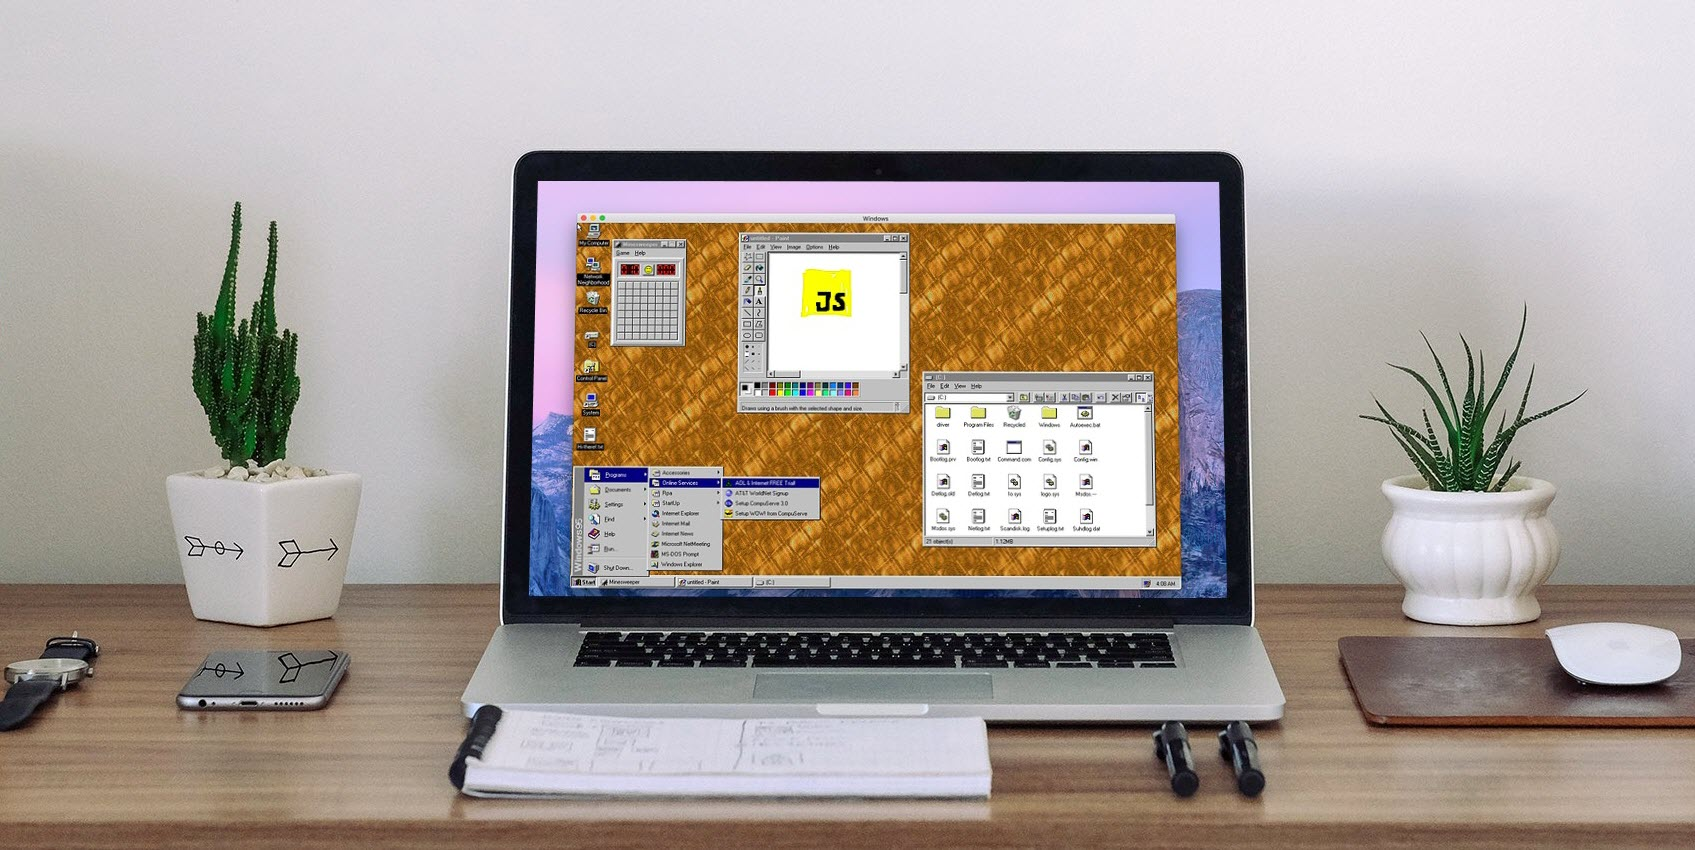 How you can run Windows 95 on Mac, Windows or Linux